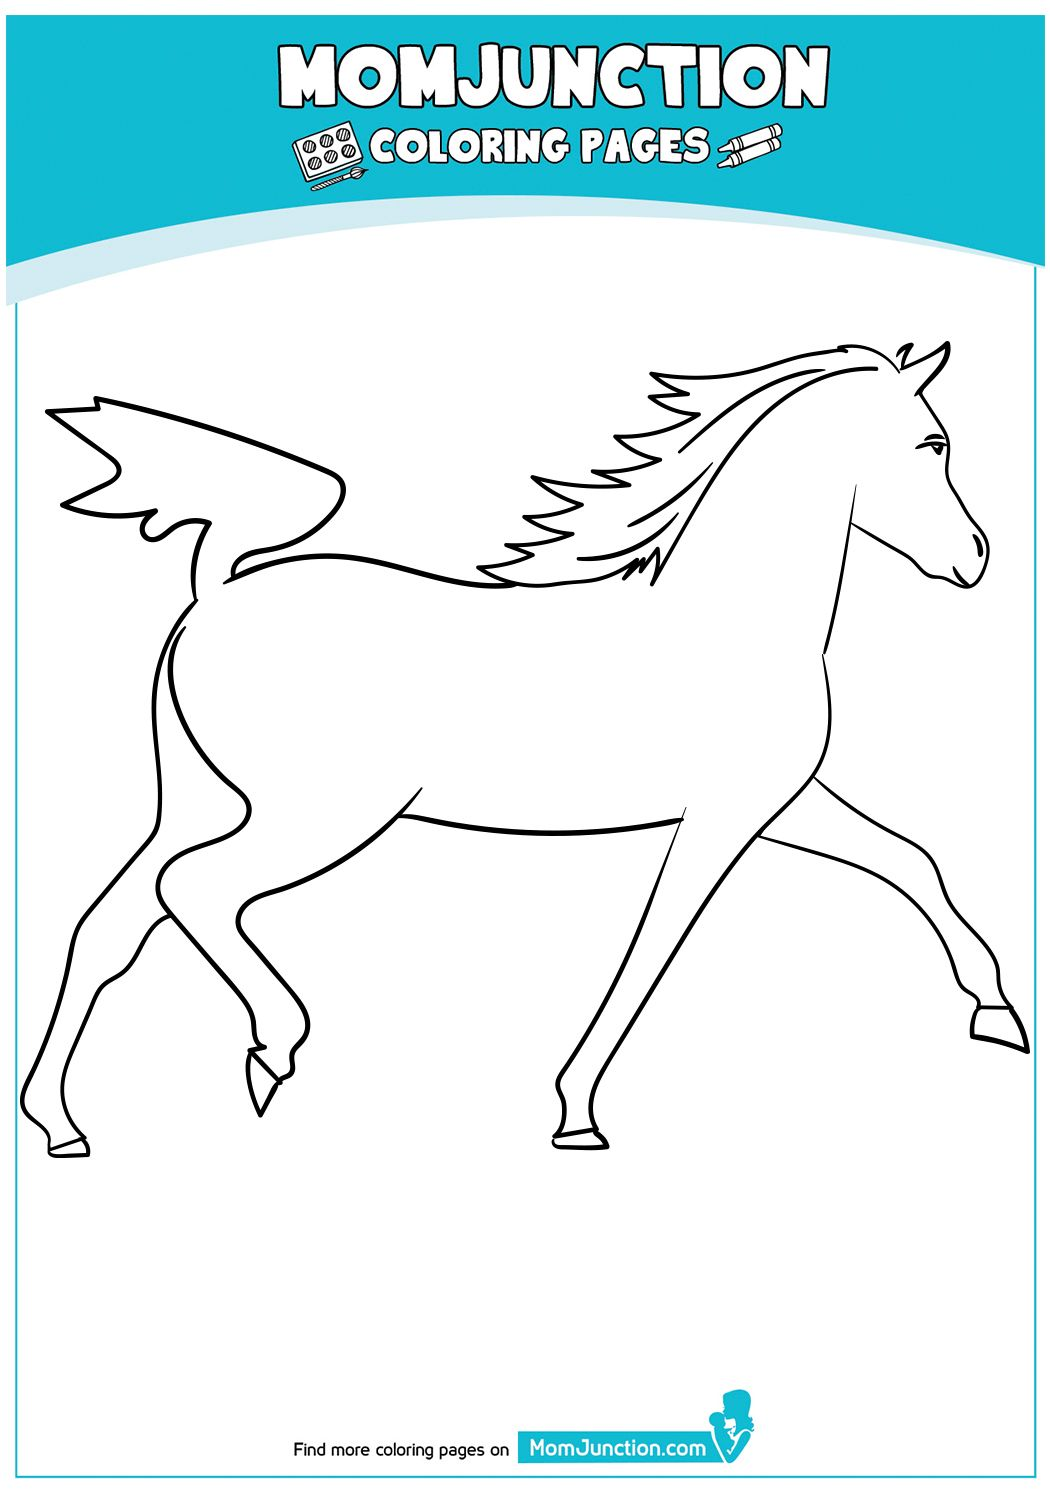 Chestnut Horse Horse Coloring Pages Coloring Pages Cute Coloring Pages